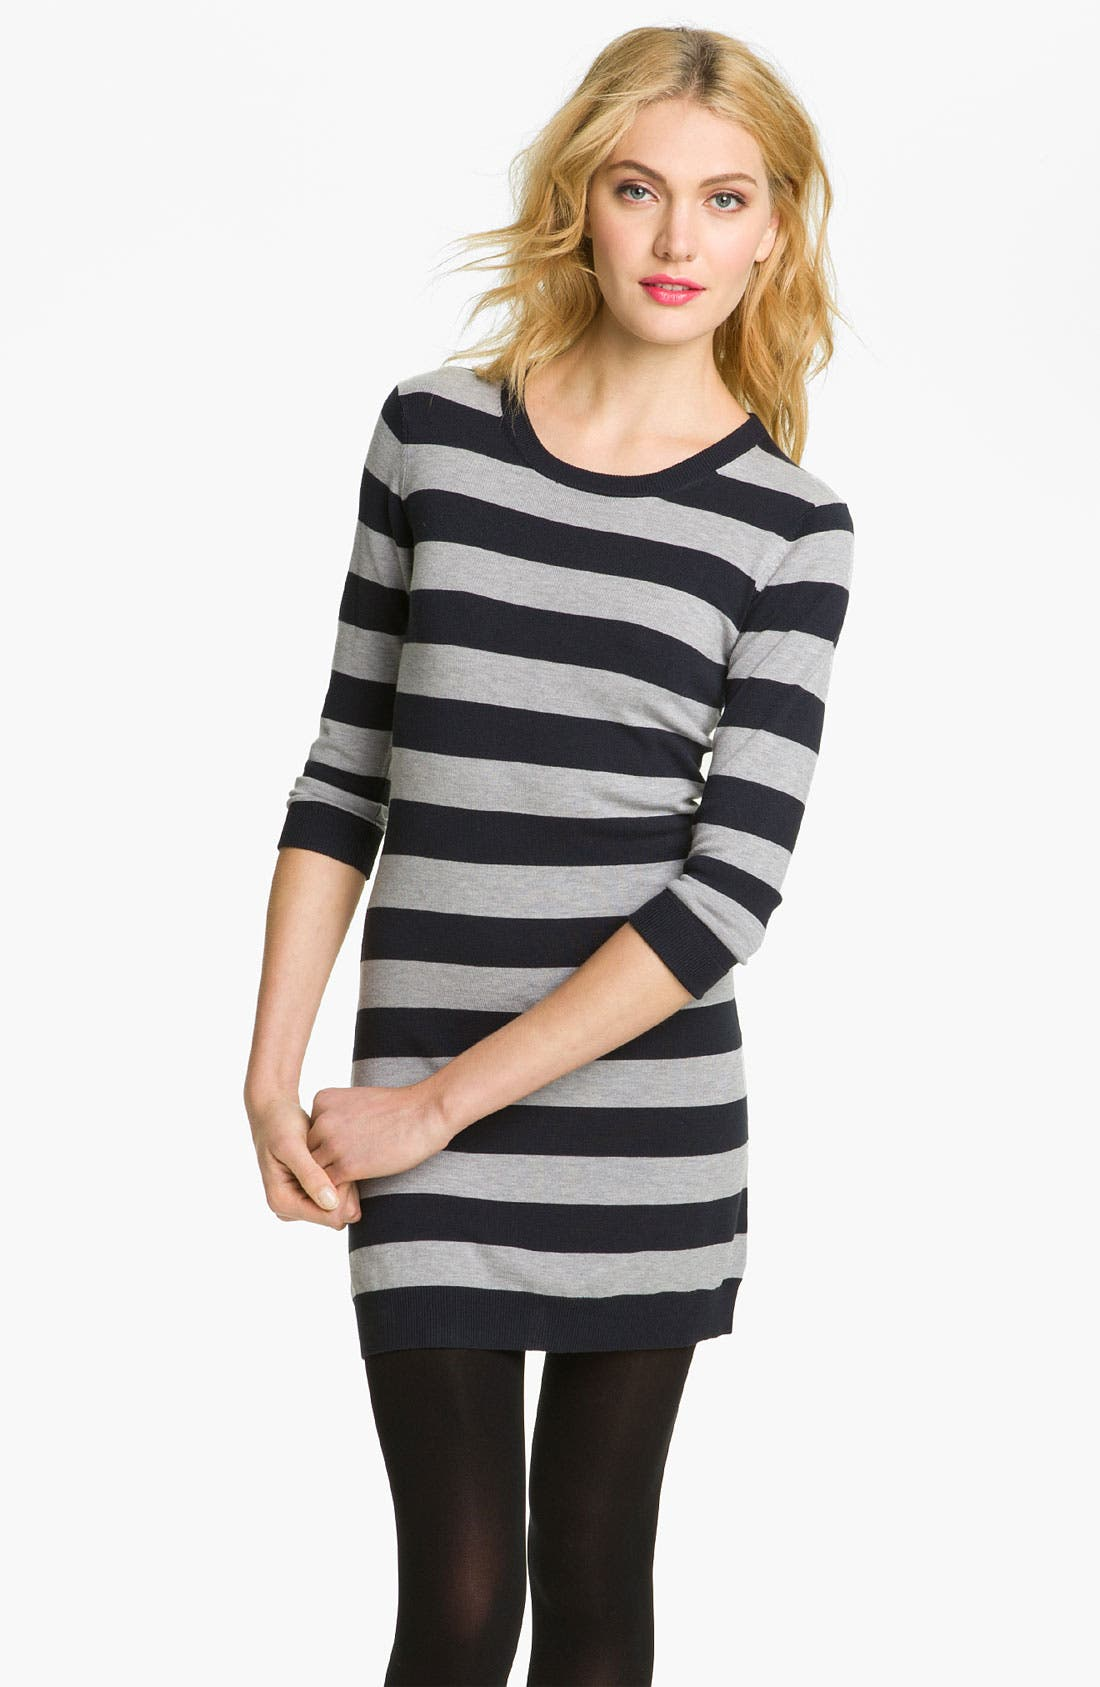 Alternate Image 1 Selected - French Connection 'Bambi Knits' Stripe Sweater Dress